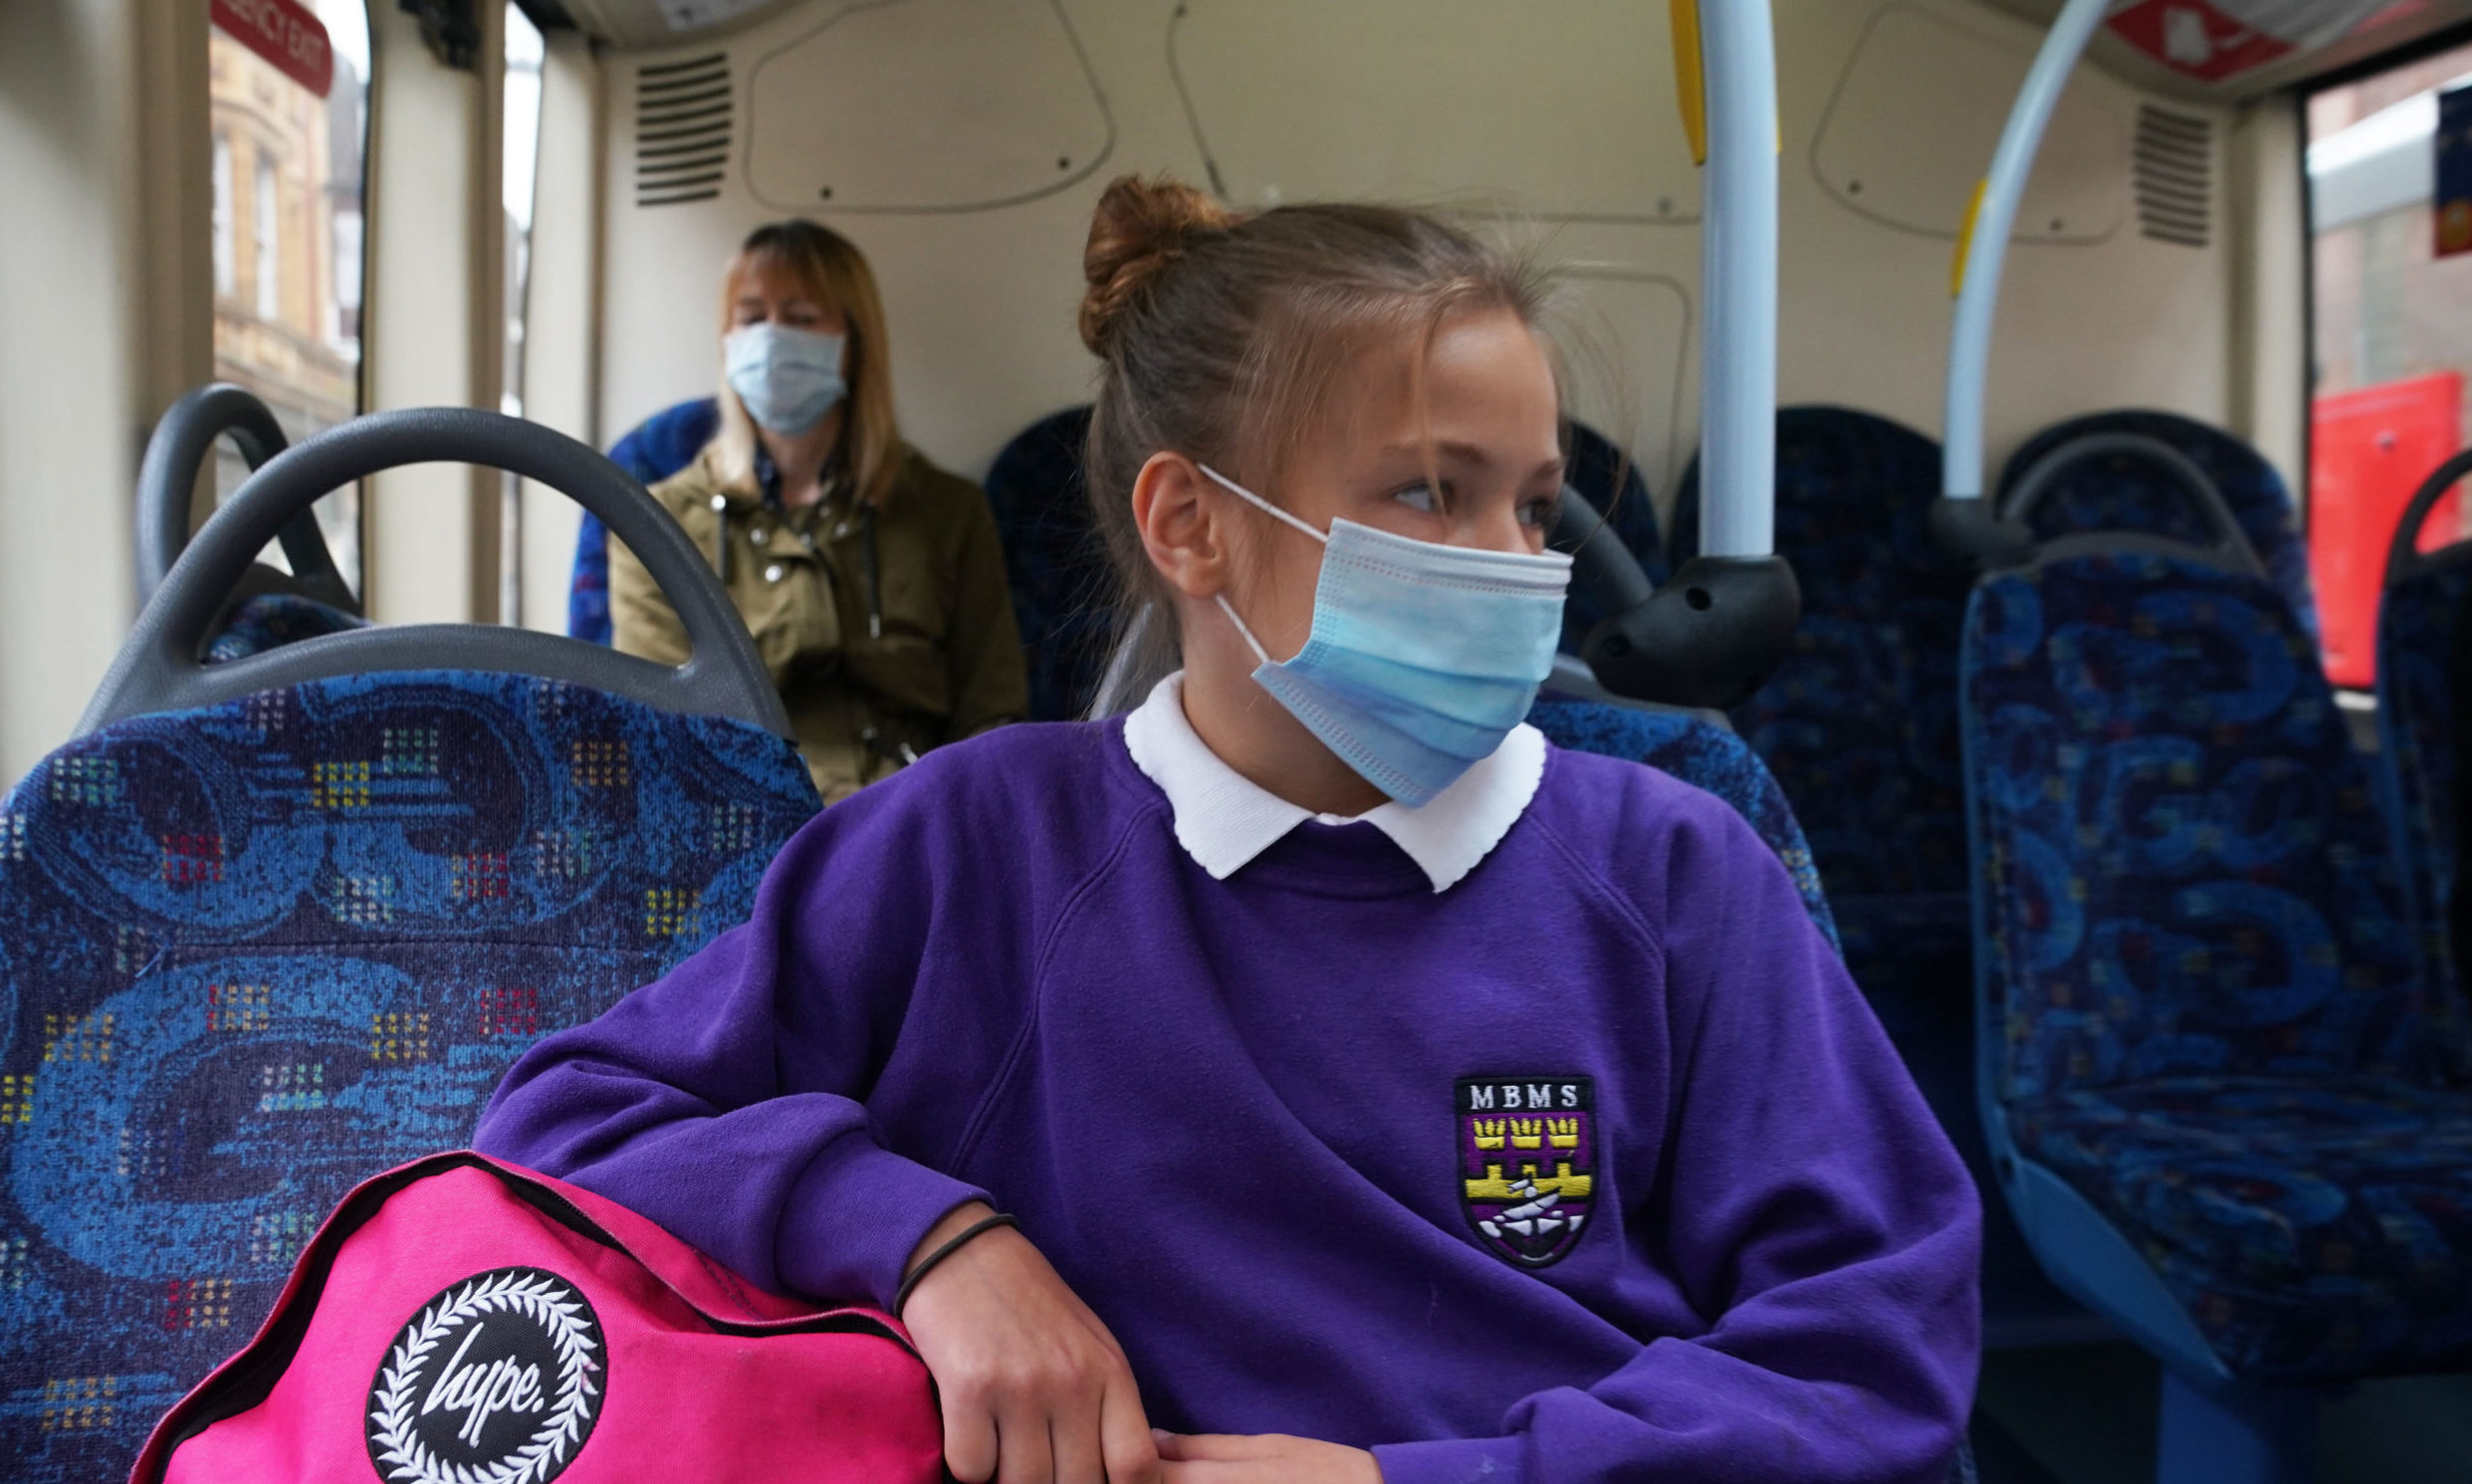 It remains unclear whether children will have to distance and wear face masks on school buses.